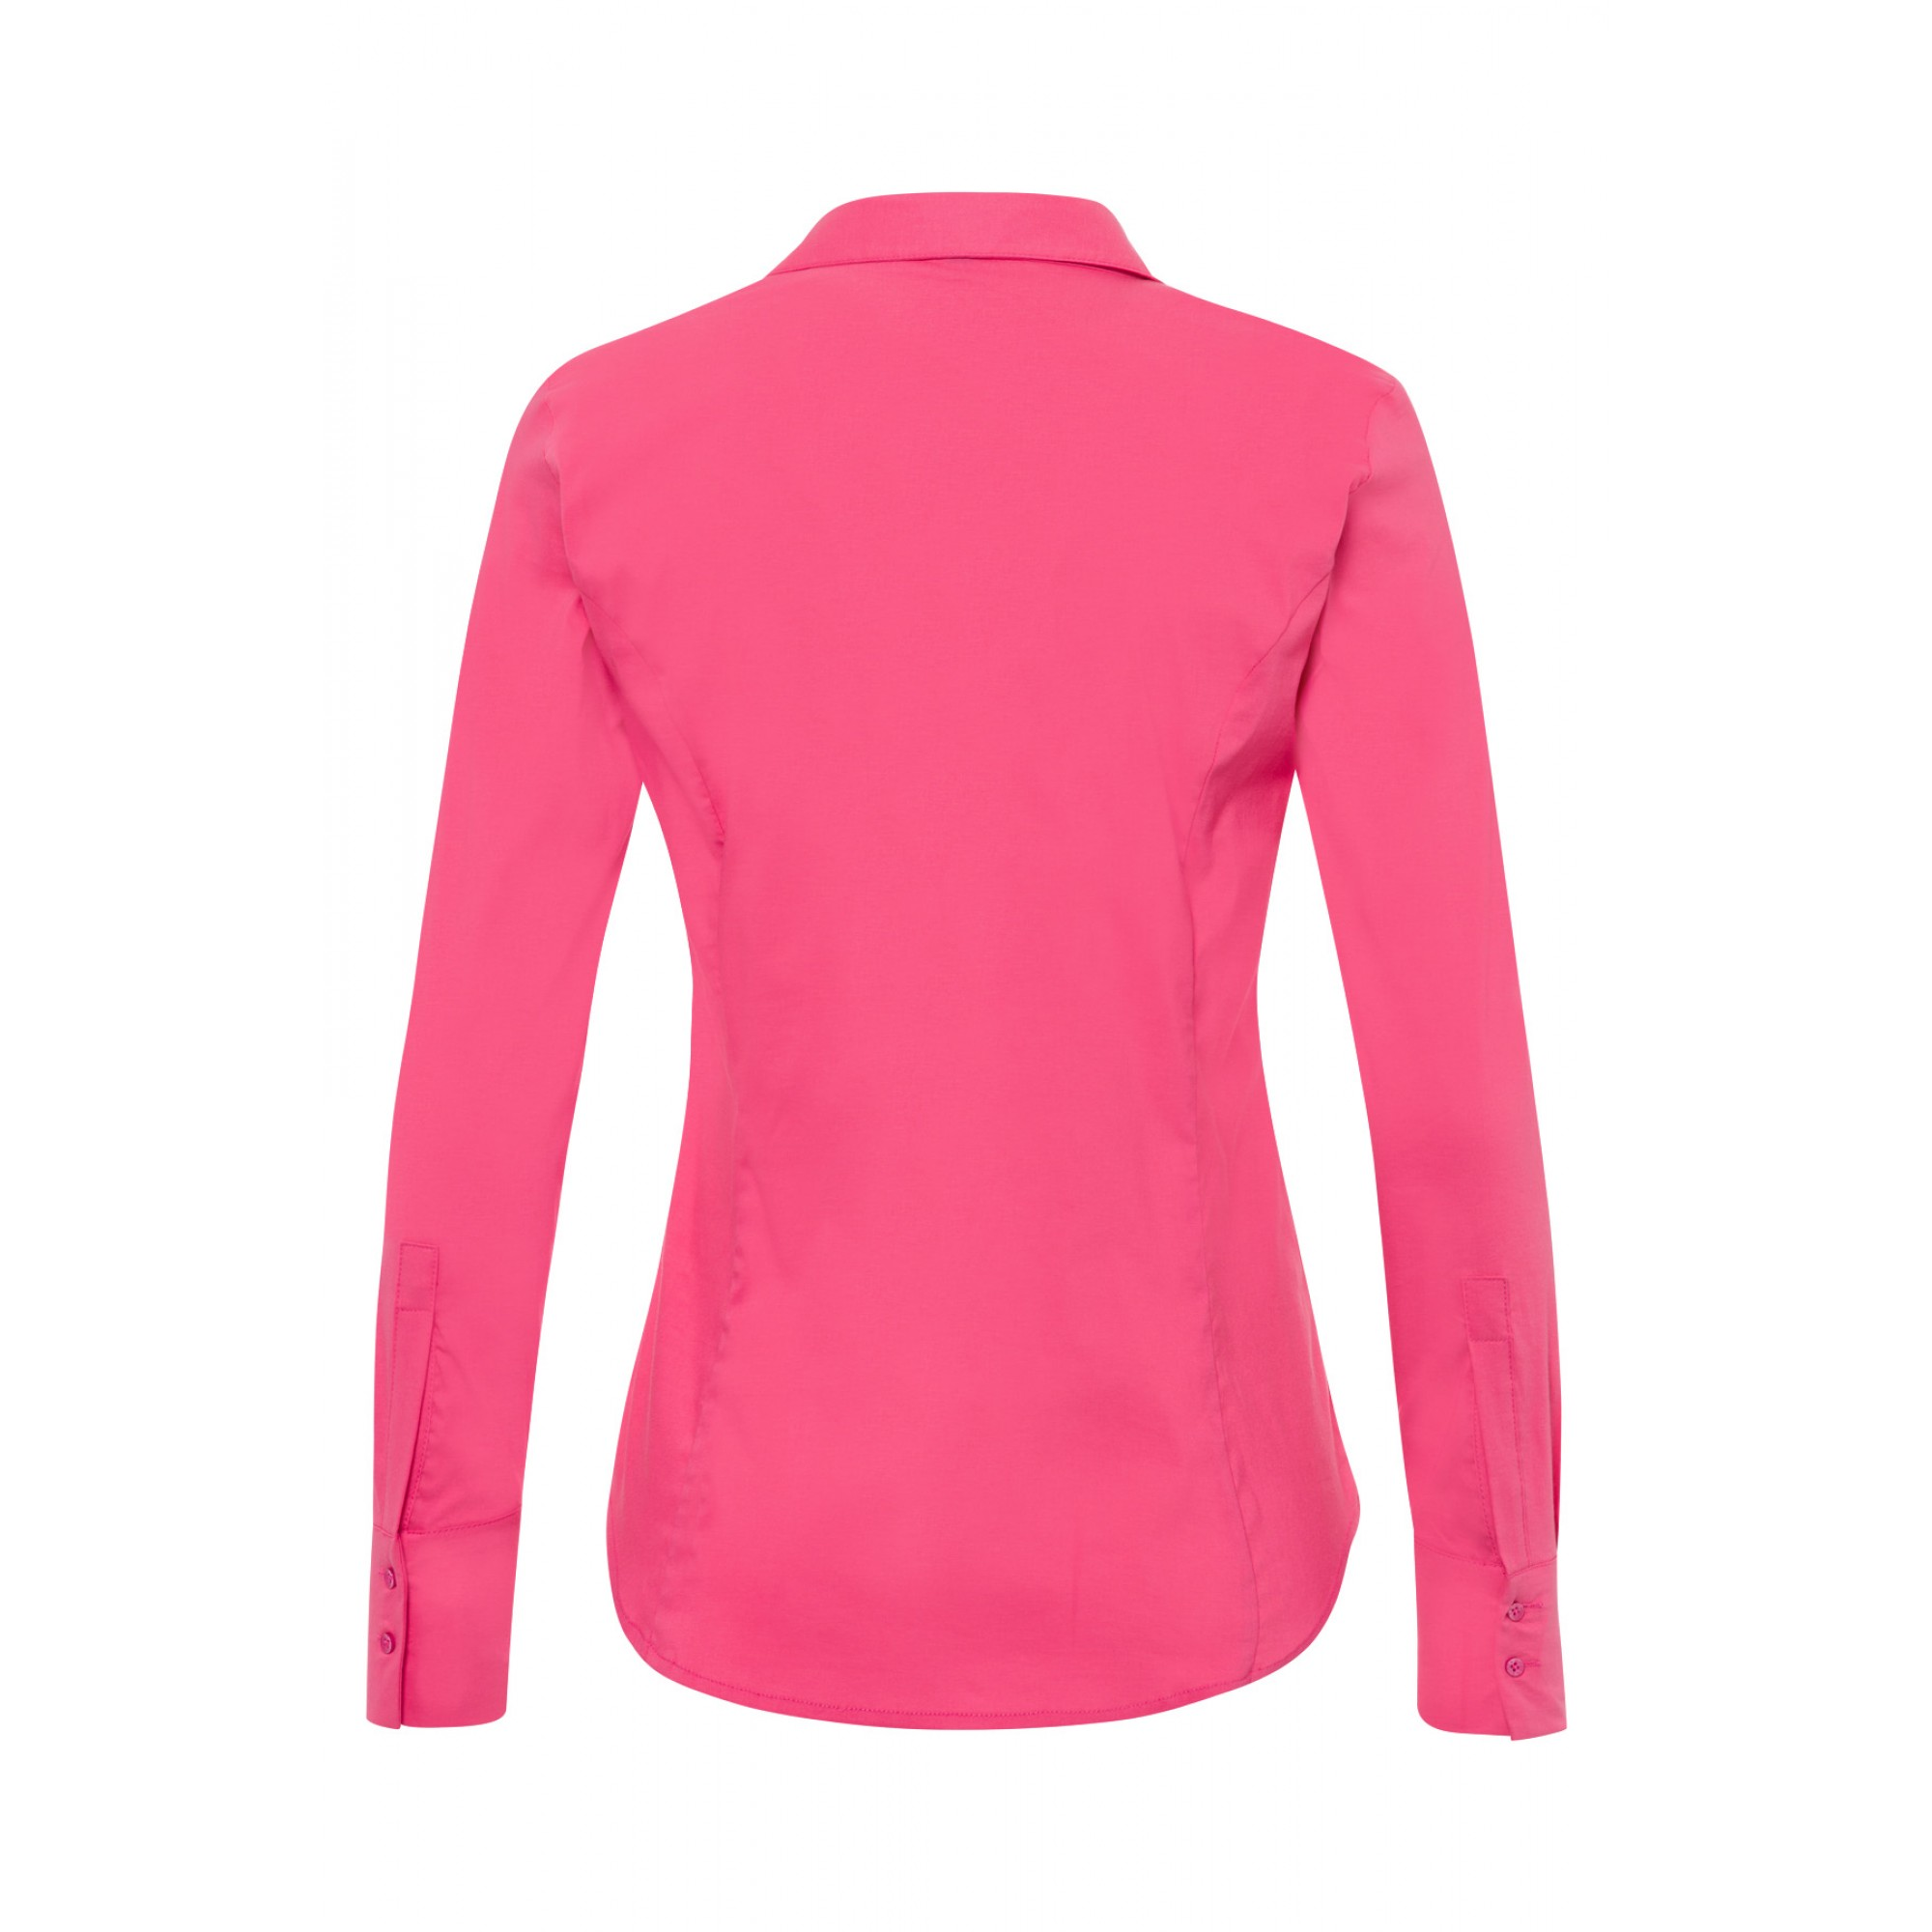 Businessbluse, mild pink 01122572-0833 2